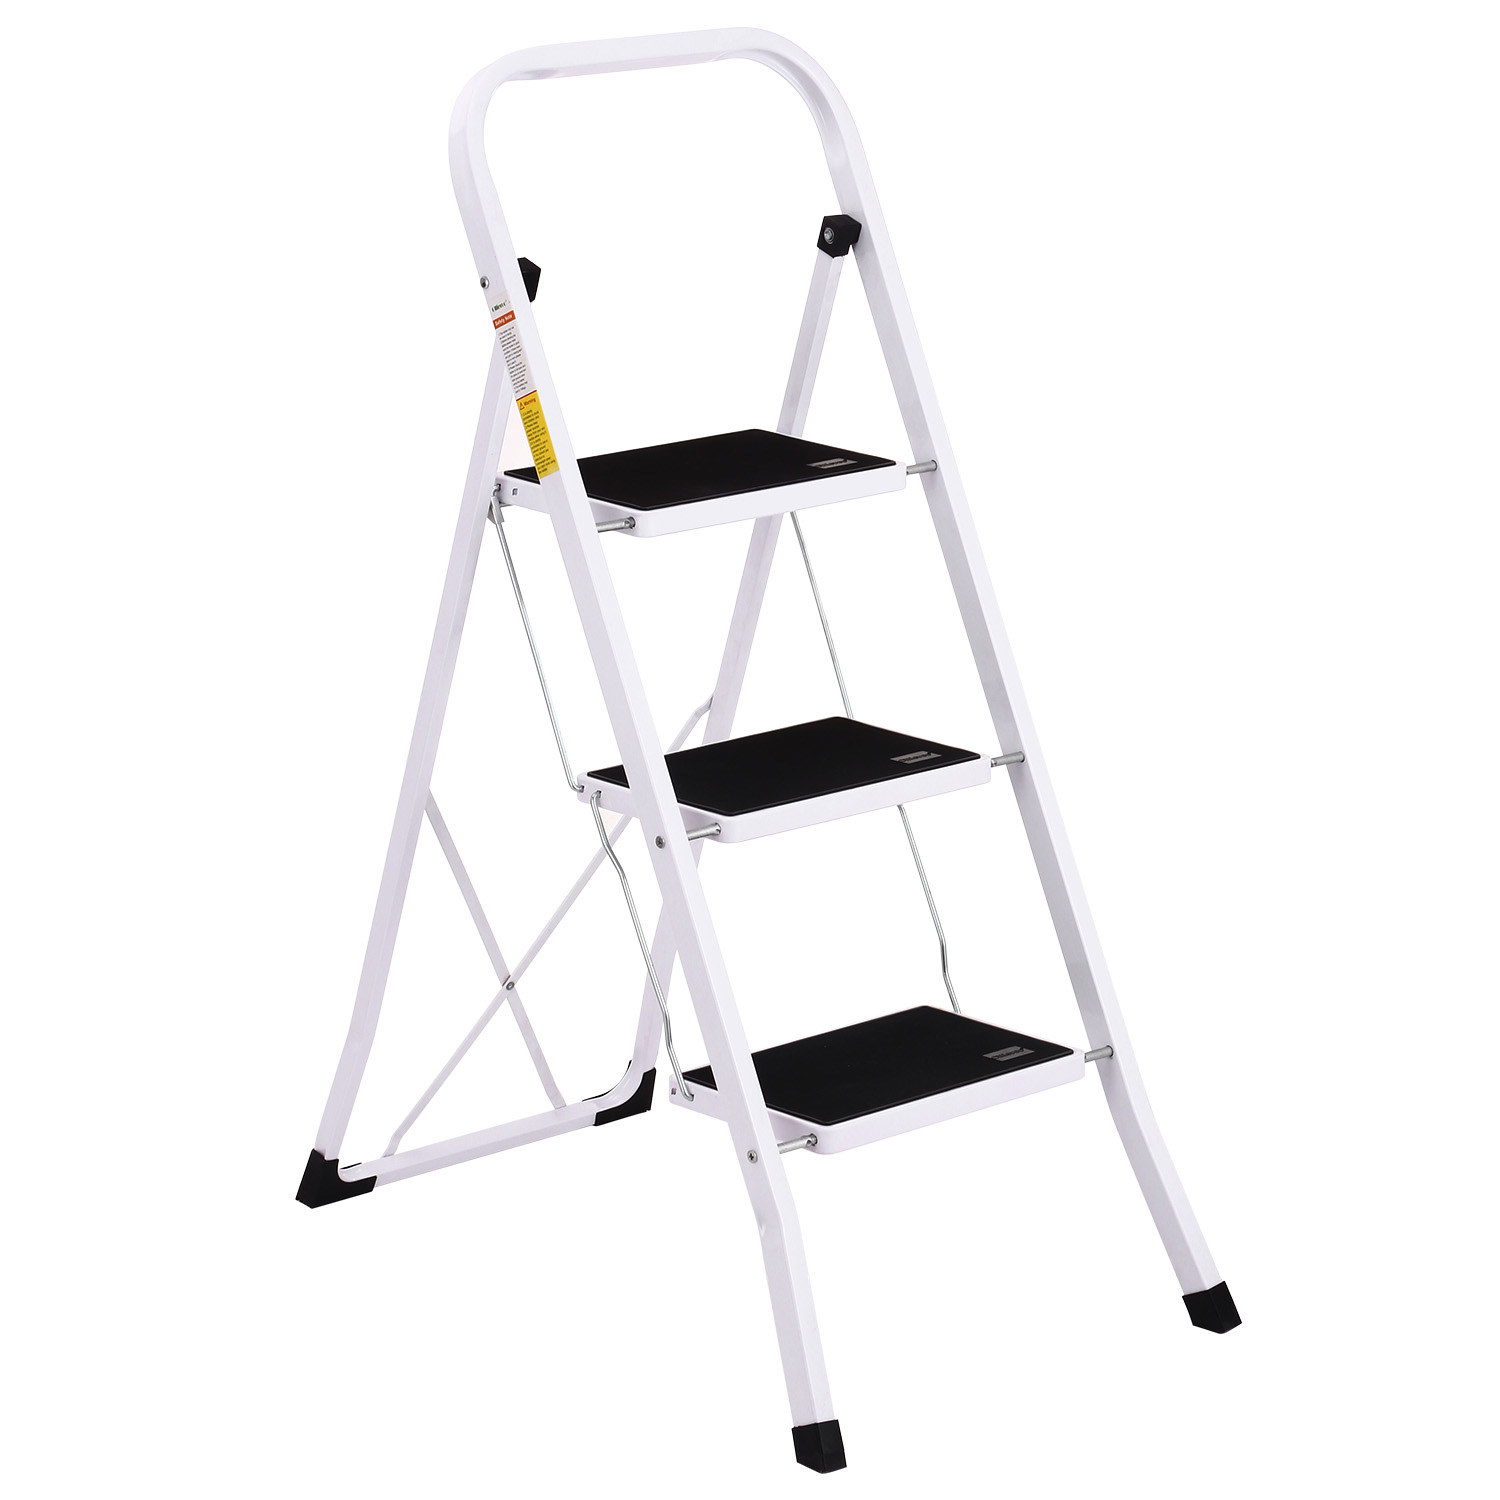 white and black step stool with three steps and anti-slip surfaces